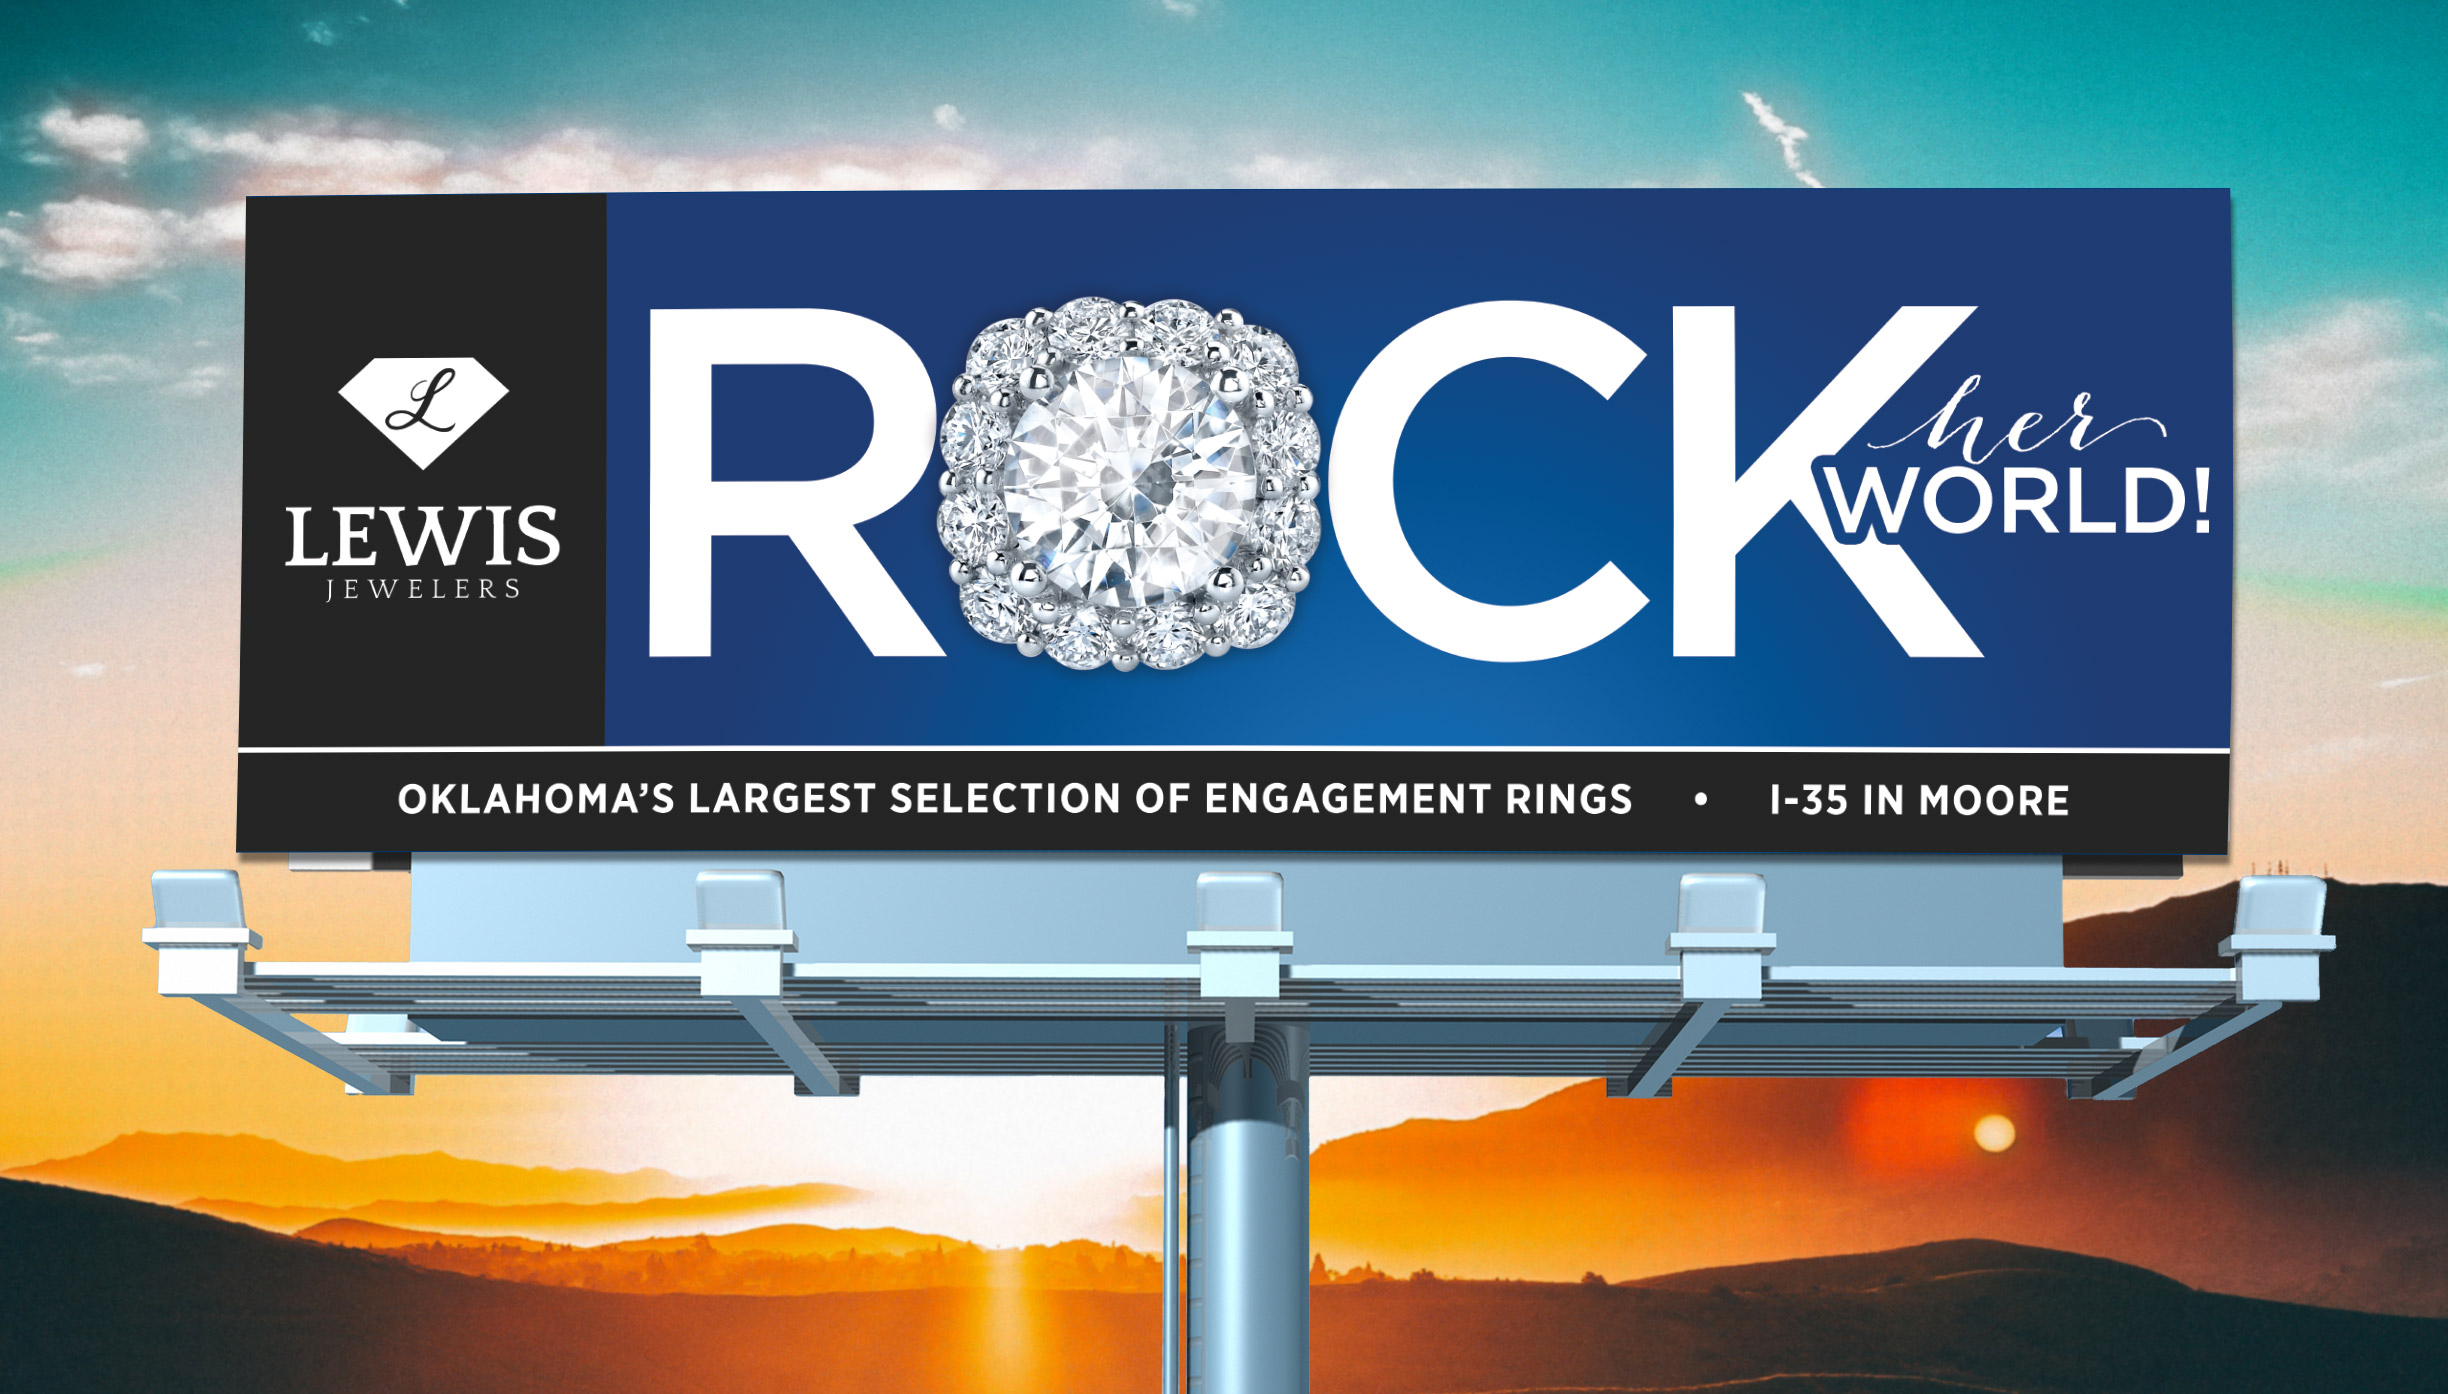 Lewis-Jewelers-Outdoor-Boards-RockHerWorld.jpg